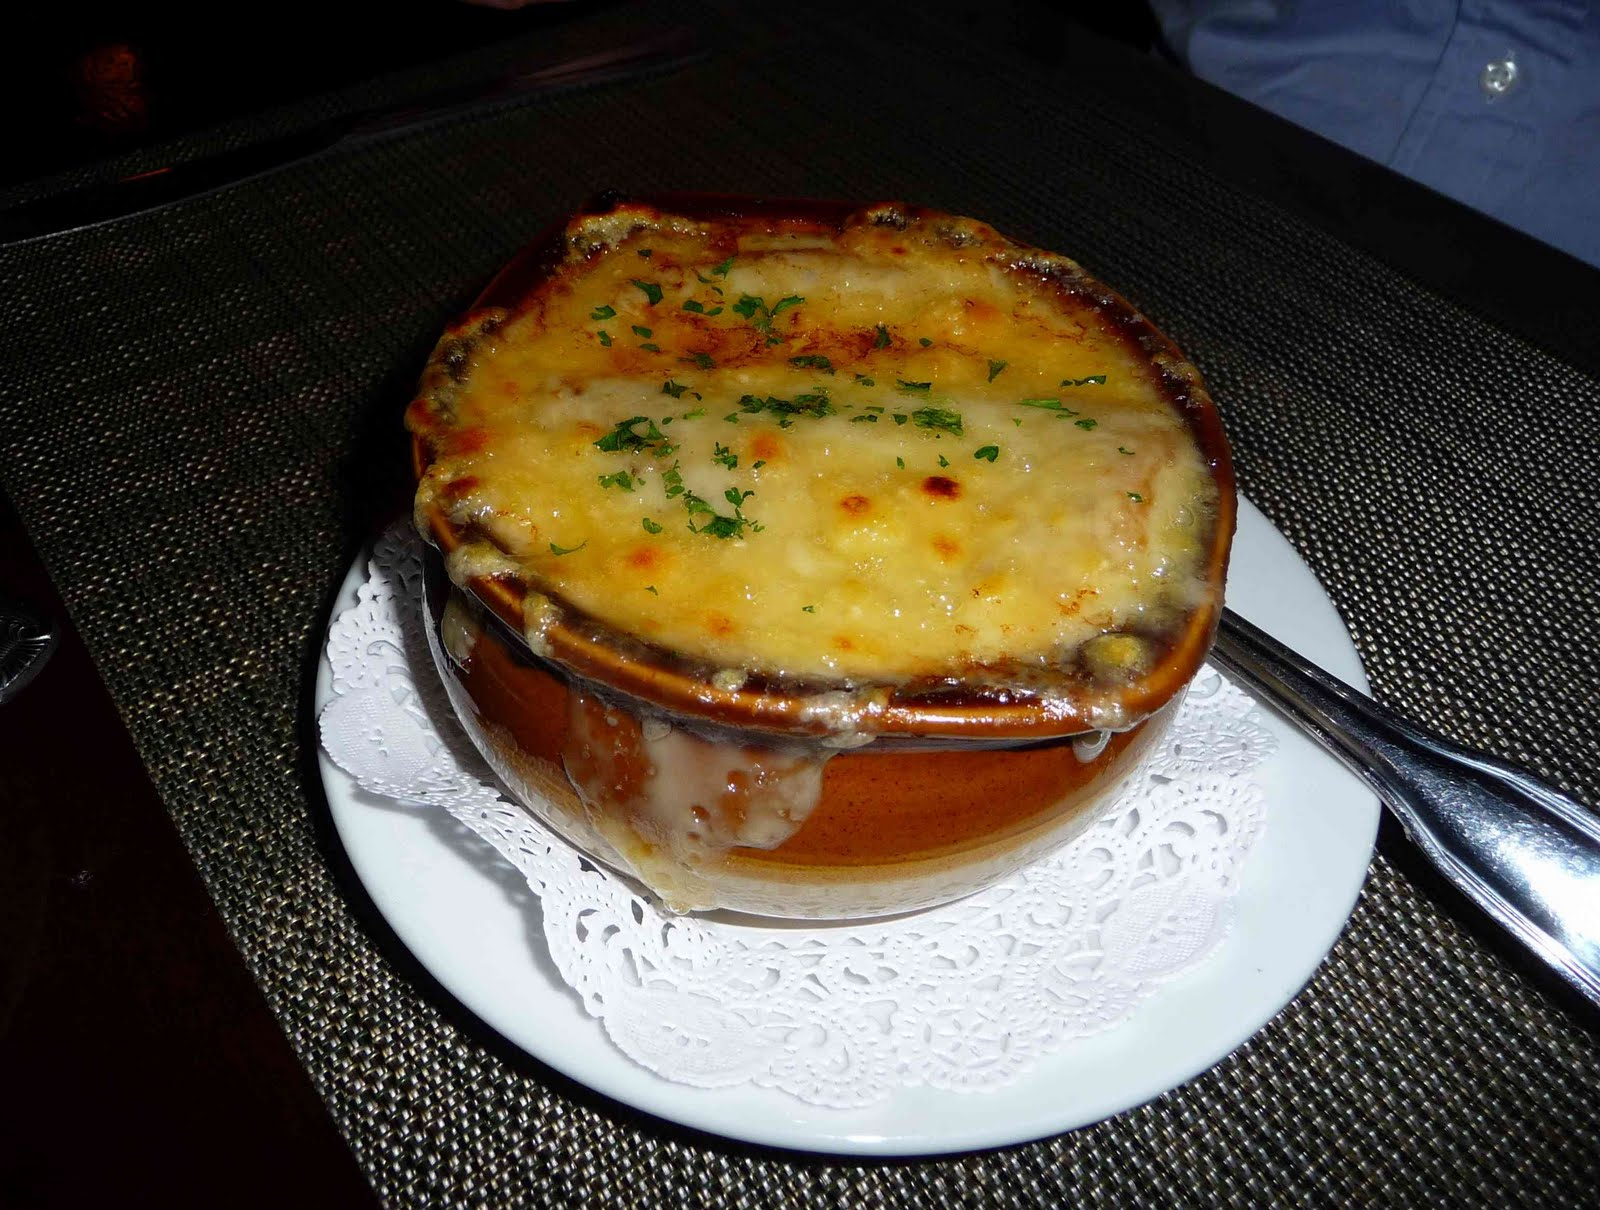 How Do You Eat French Onion Soup?